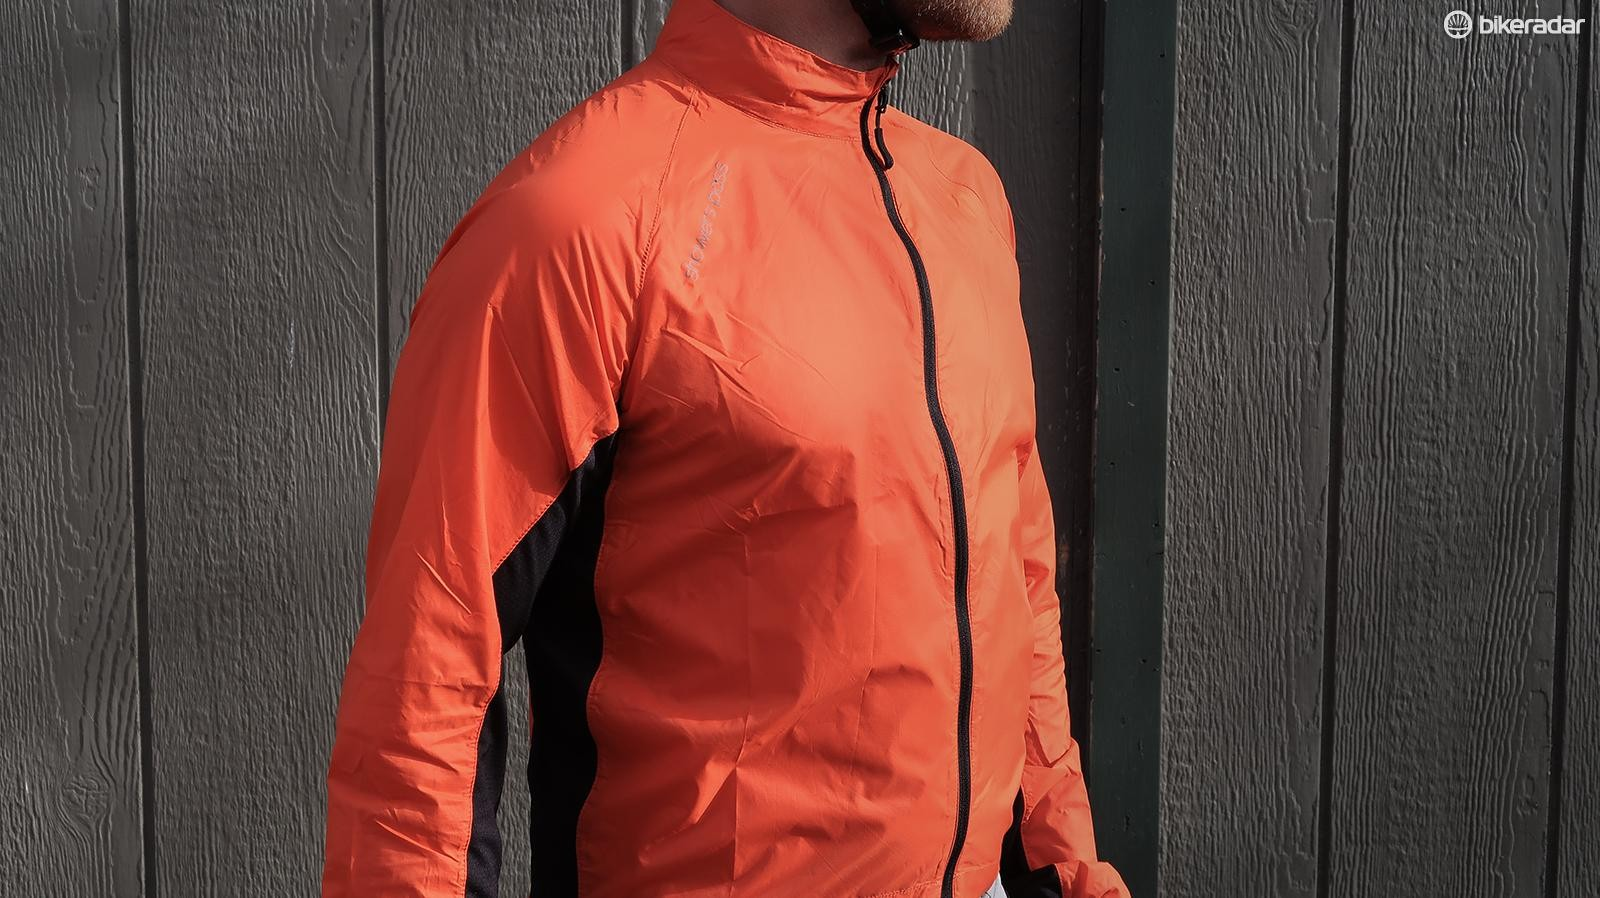 The Showers Pass Ultralight Wind Jacket is windproof and water resistant